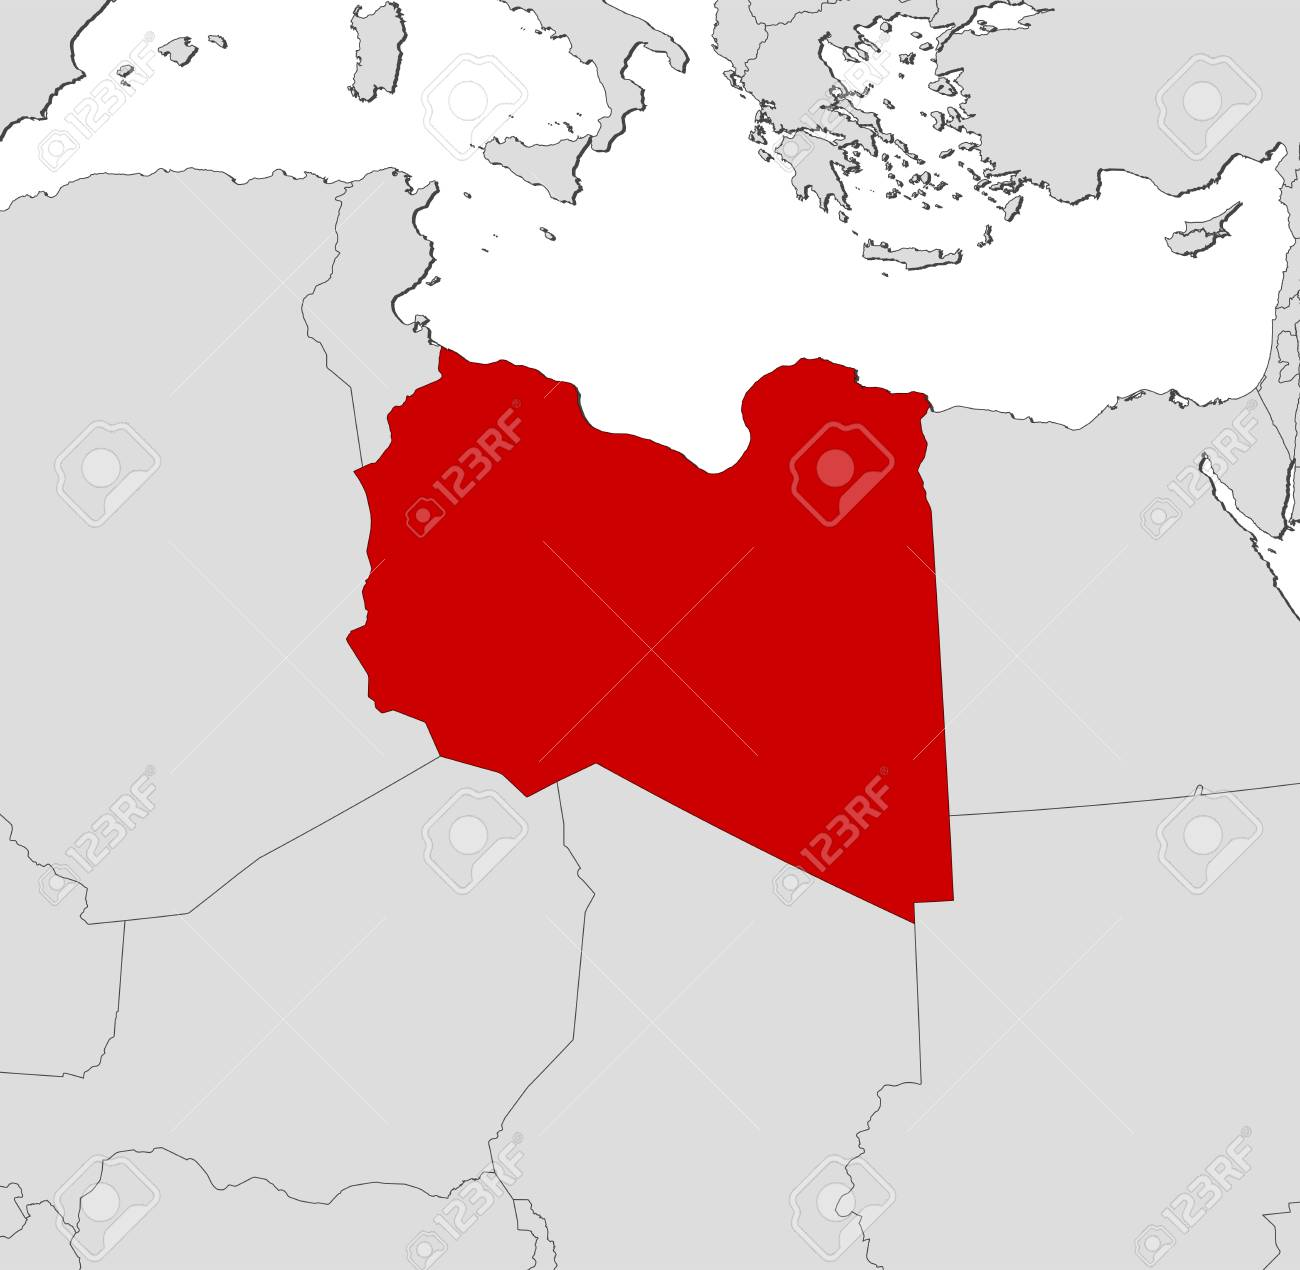 Map of libya and nearby countries libya is highlighted in red map of libya and nearby countries libya is highlighted in red stock vector gumiabroncs Gallery